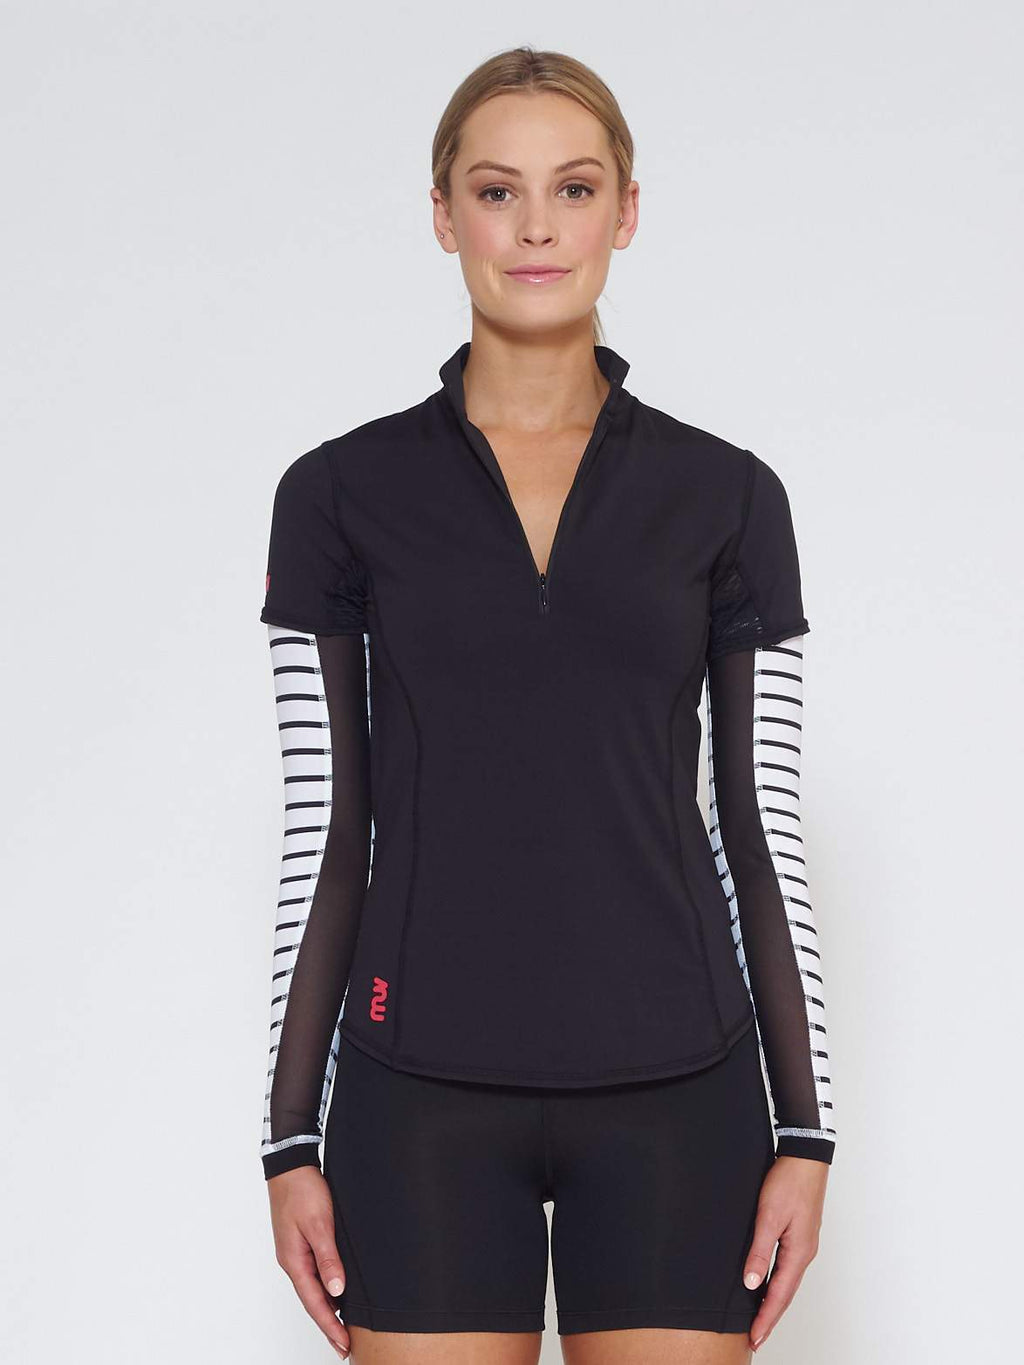 MUV Sportswear accessories FLARE MUV Tube Sleeve With Mesh - Stripe